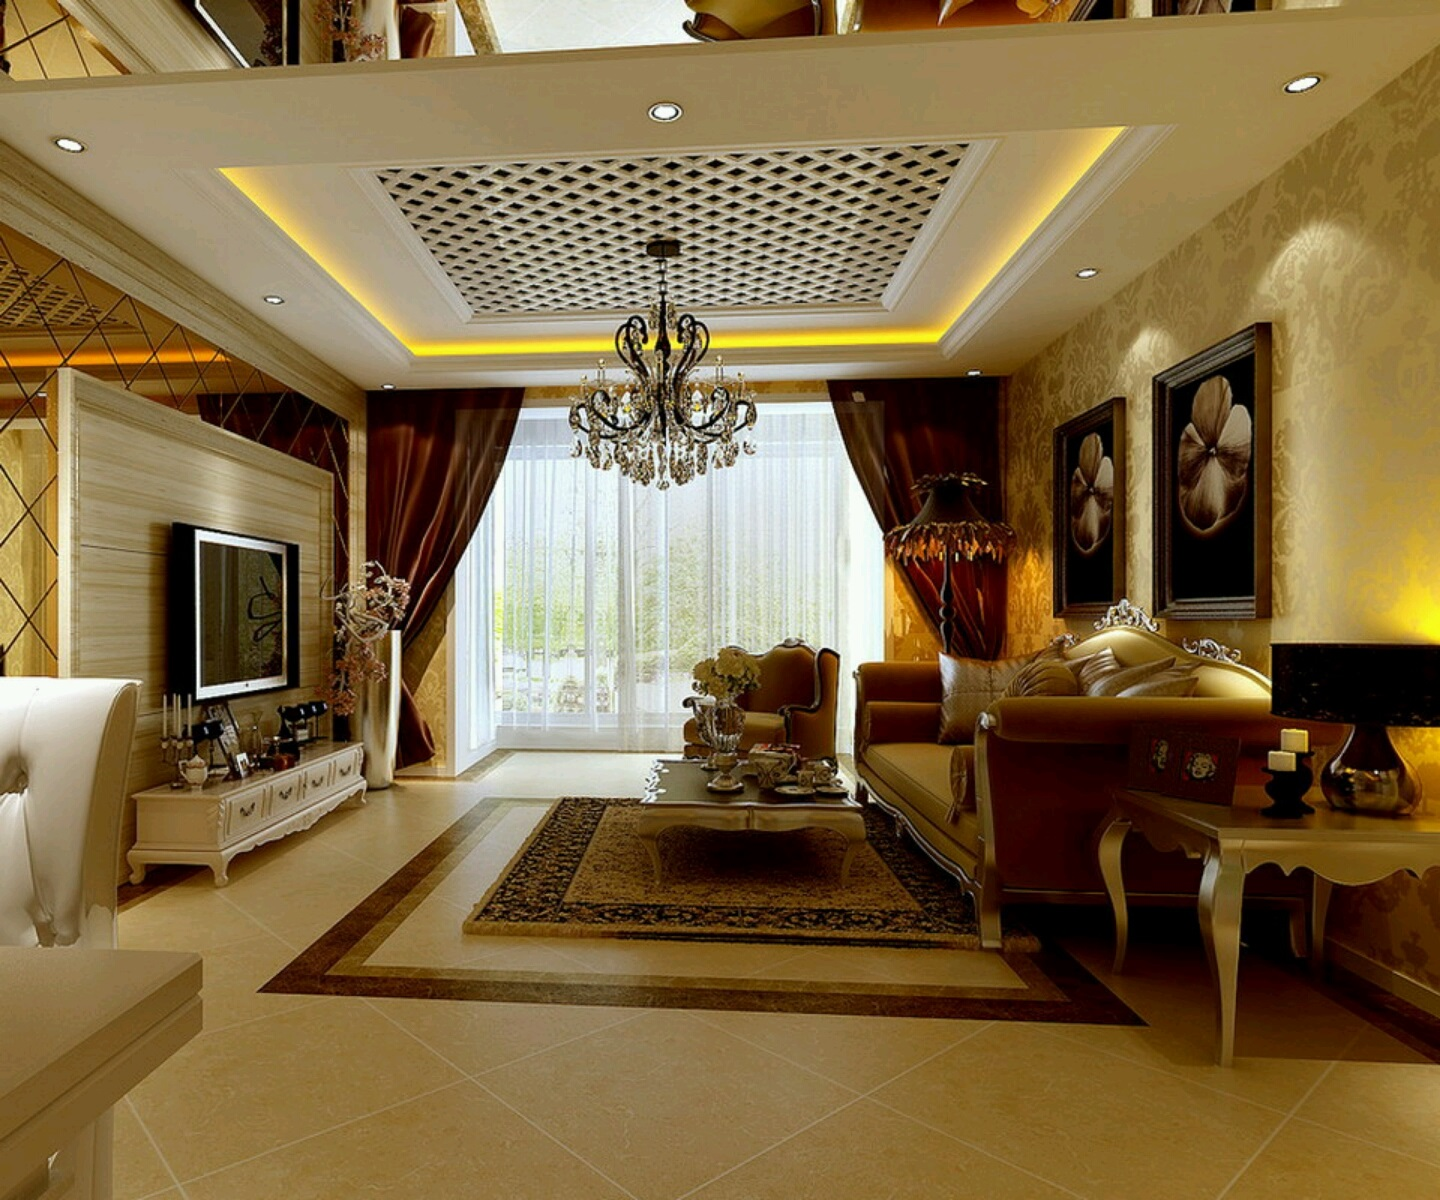 Luxury Home Interior Design Living Rooms: Ver Fotos De Casas Bonitas. Escoja Y Vote Por Sus Fotos De